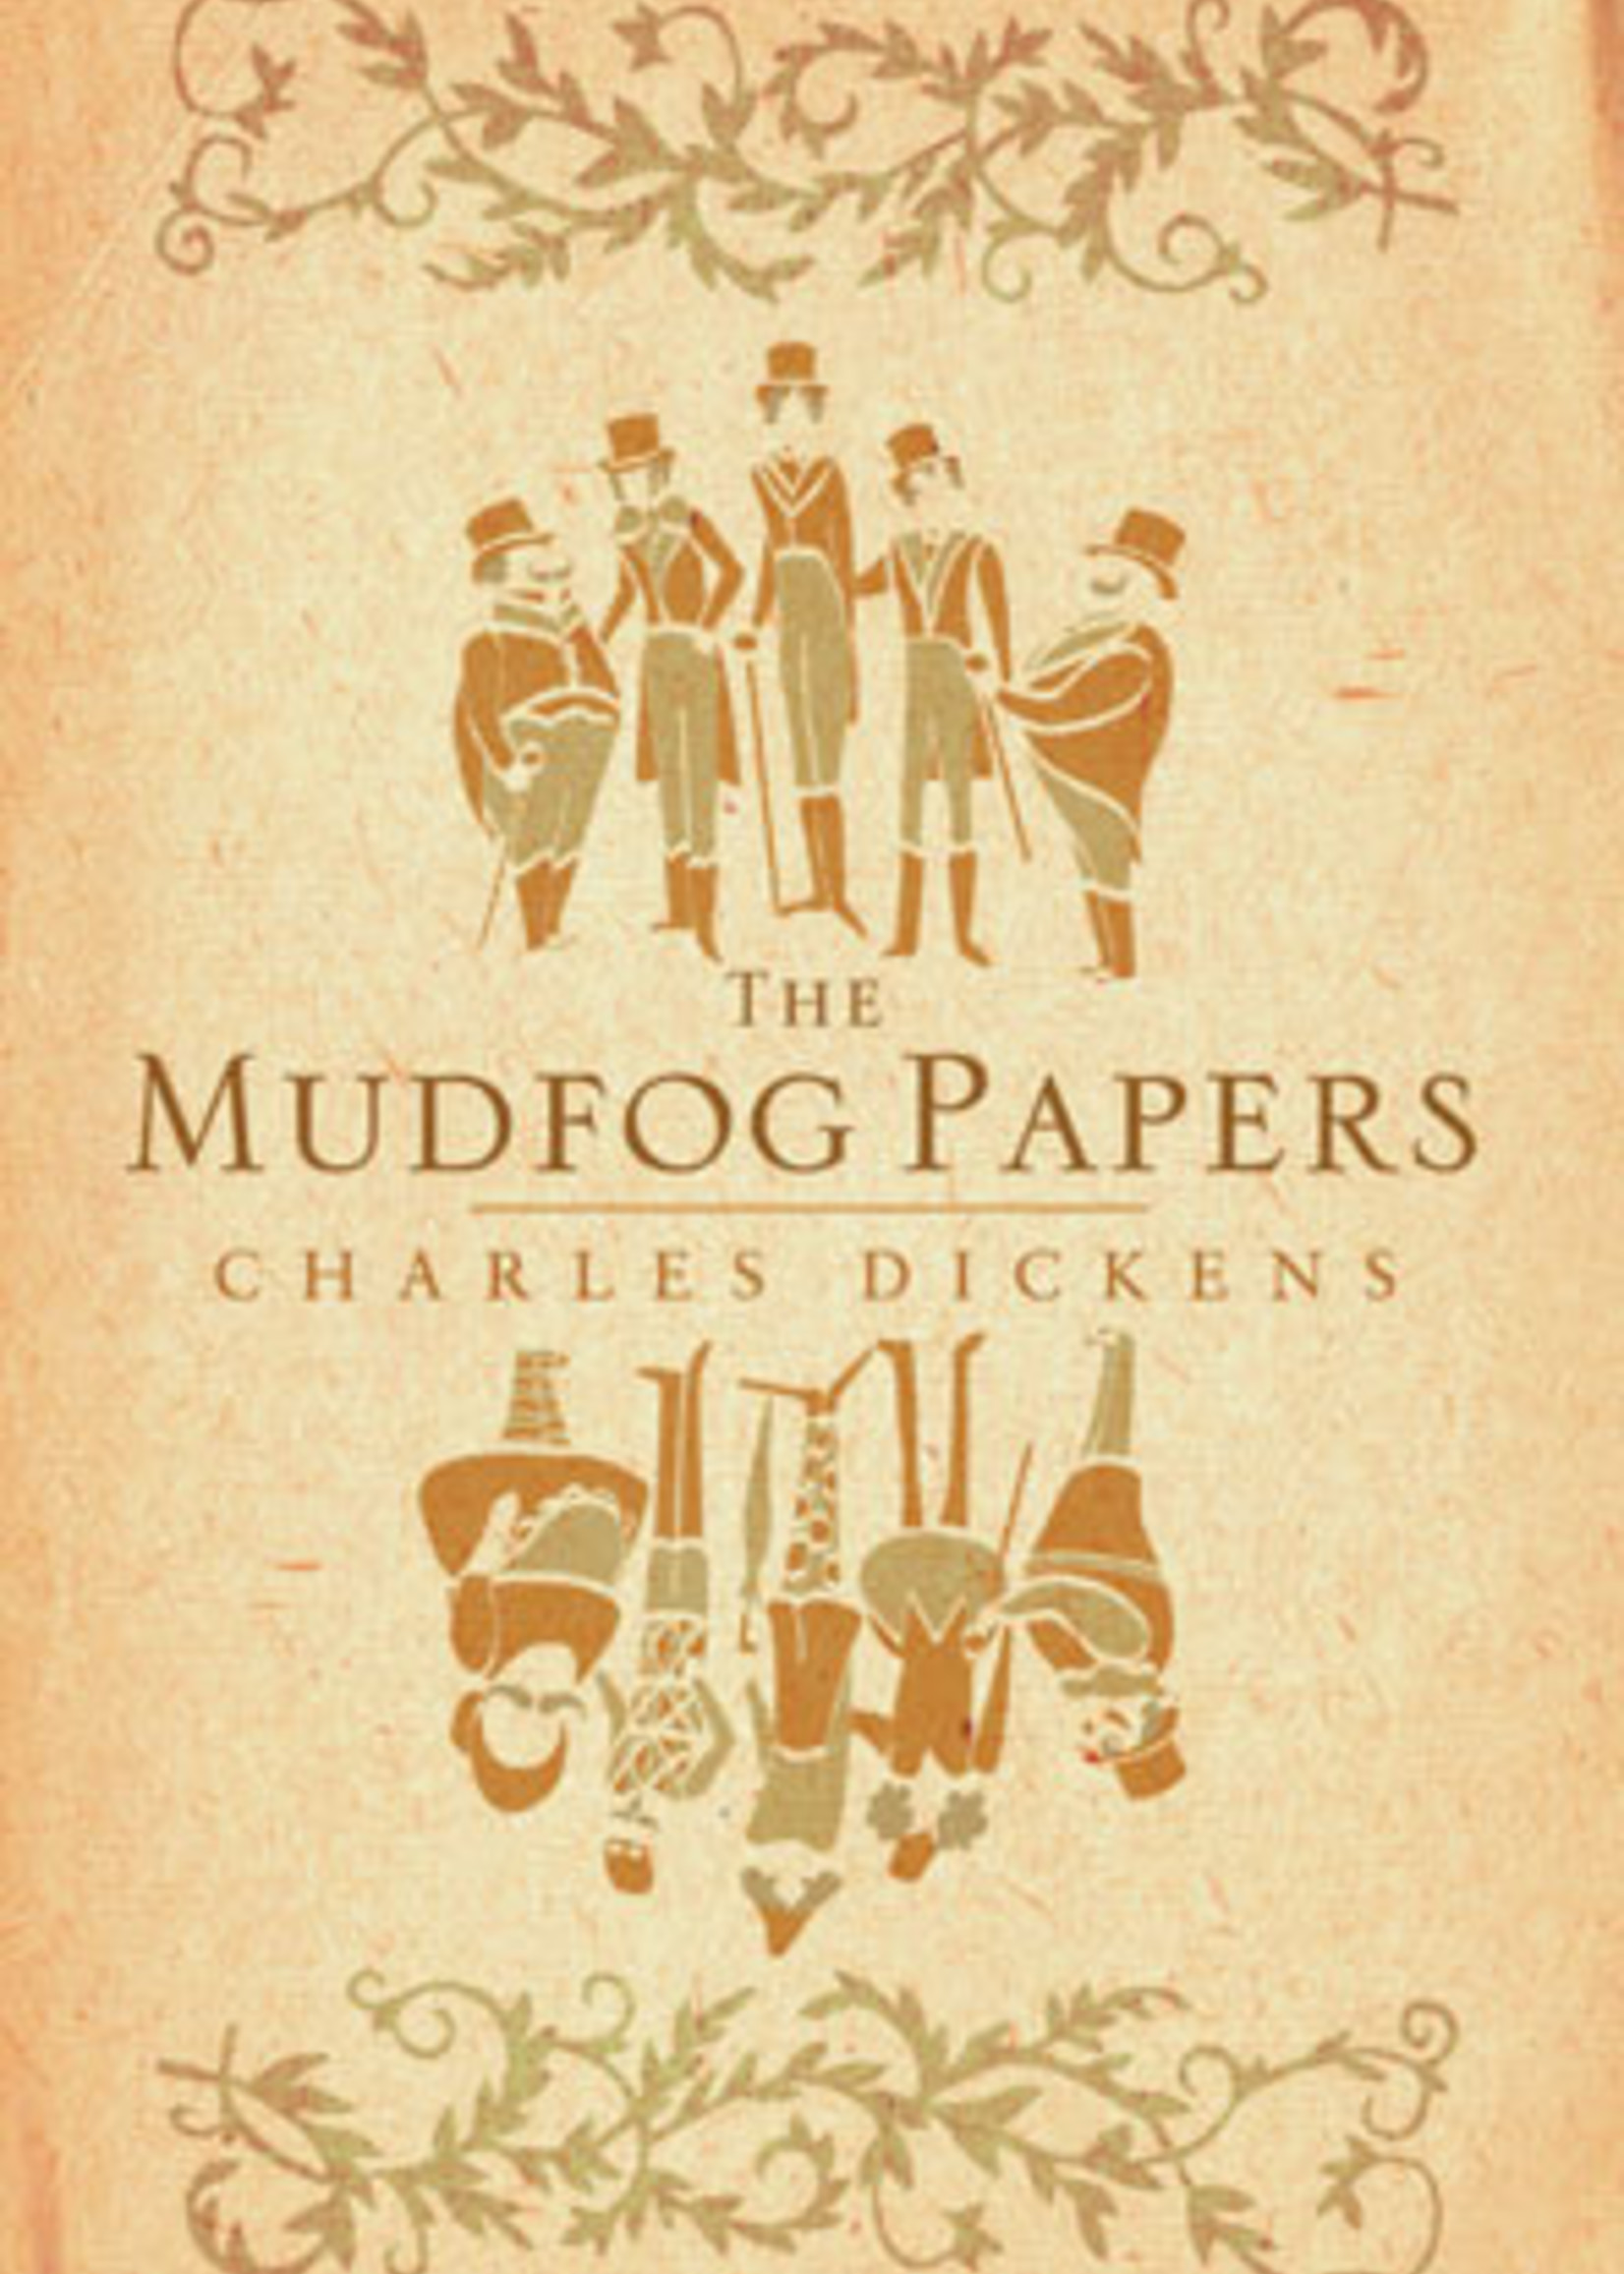 The Mudfrog Papers by Charles Dickens